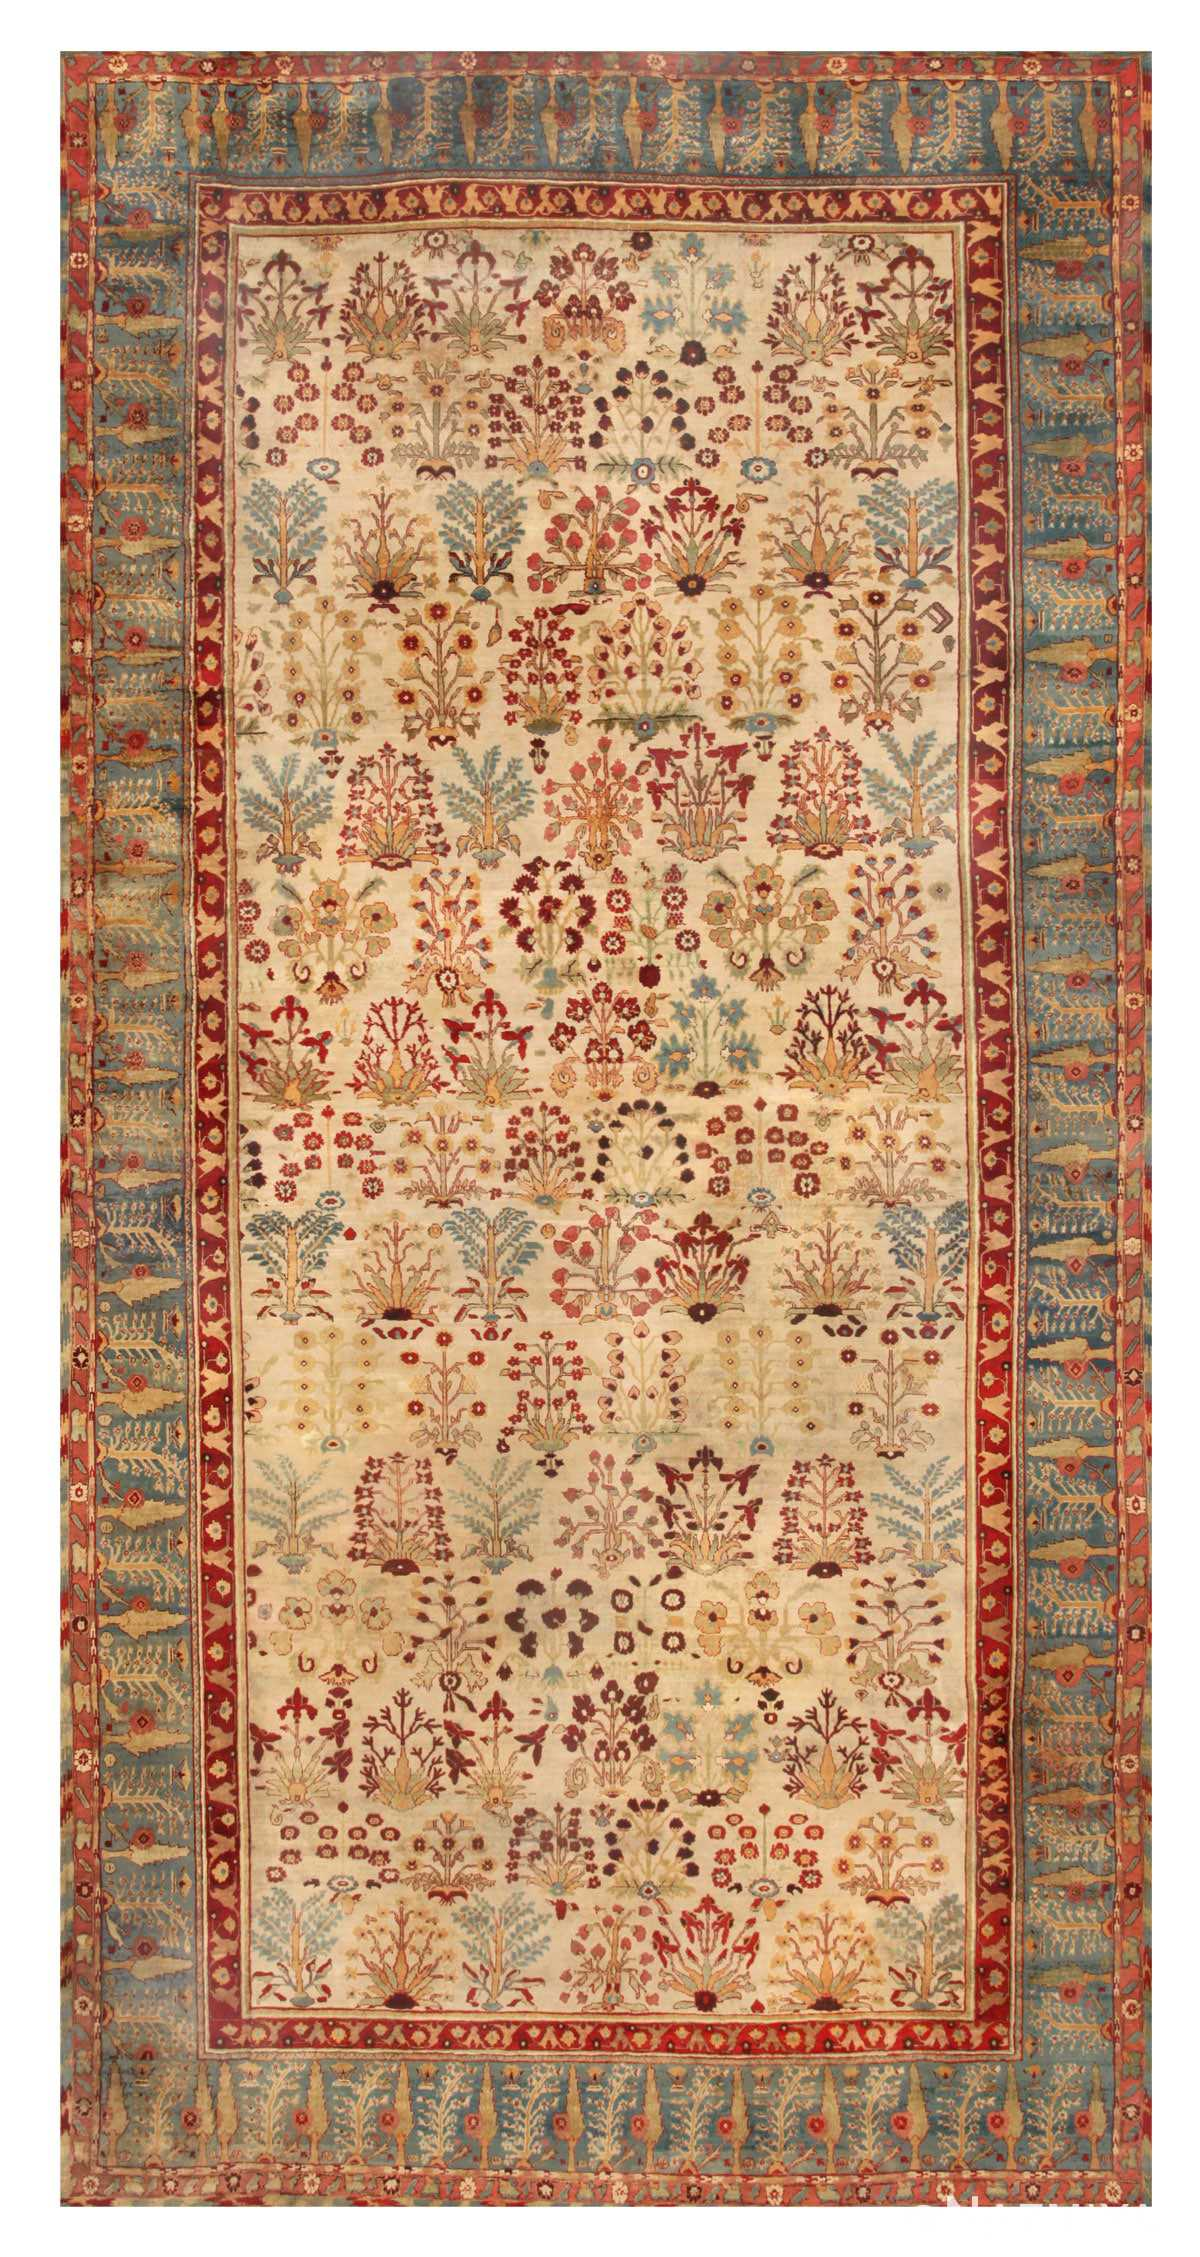 Antique Agra Oriental Rugs 44887 Nazmiyal